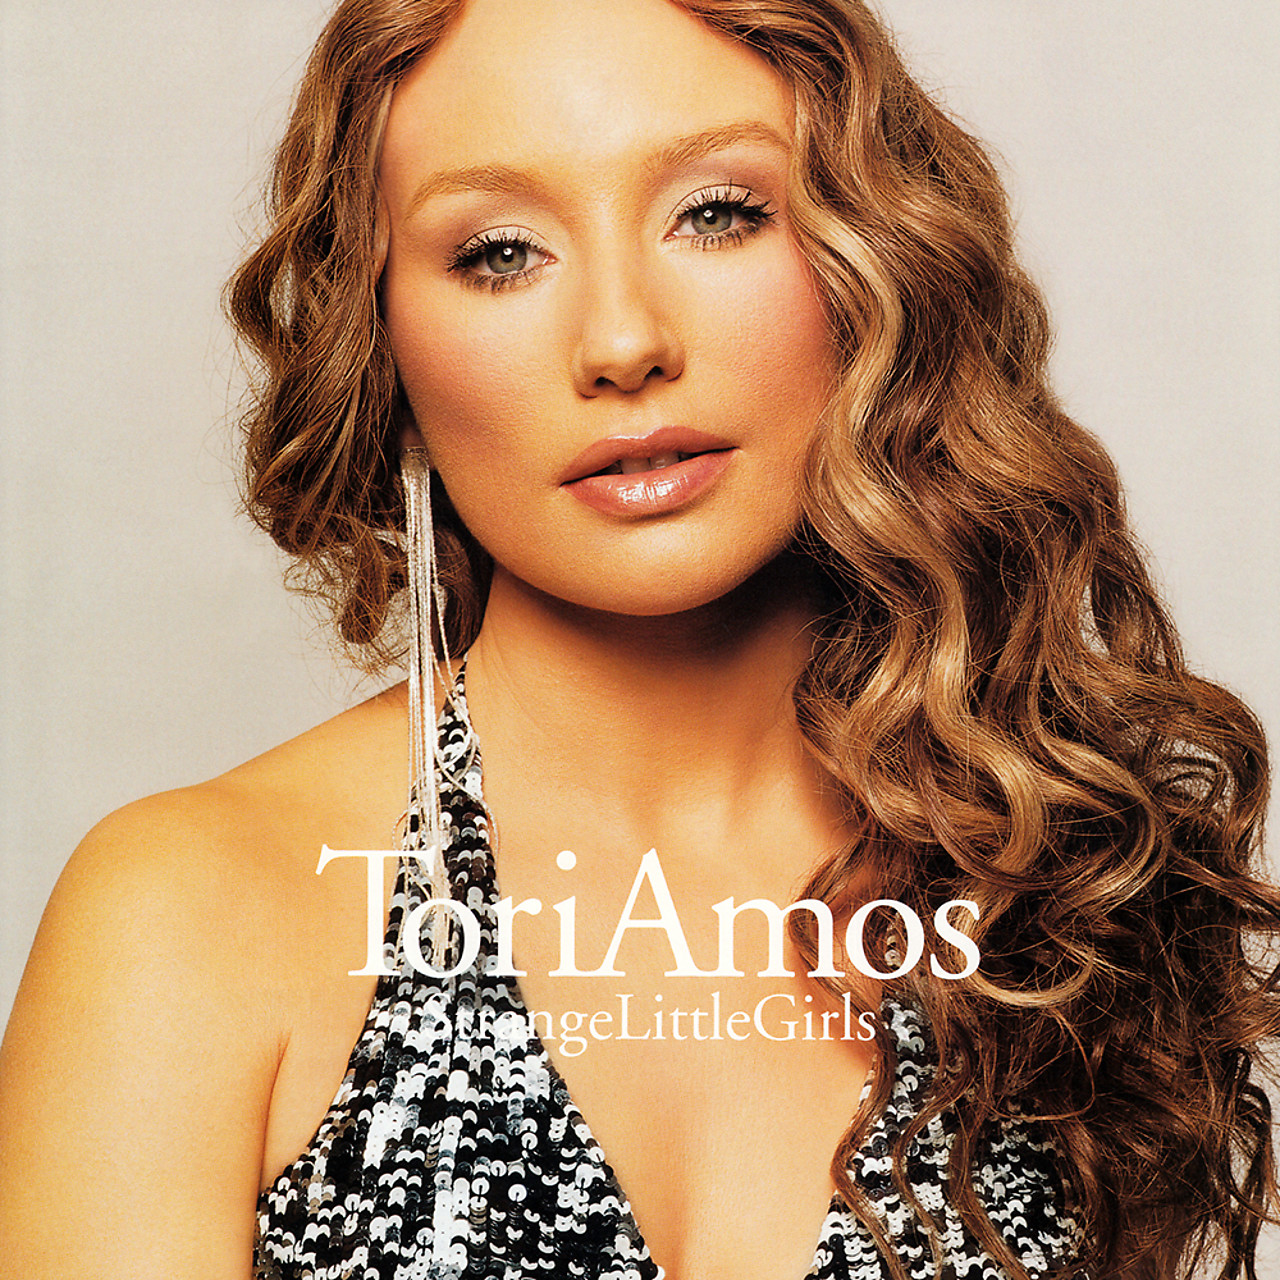 """an analysis of the song me and a gun by tori amos February 15, 2018: songs i love: tori amos' """"me and i would still want to say about tori amos' raw and stunning """"me and a gun song tomorrow."""